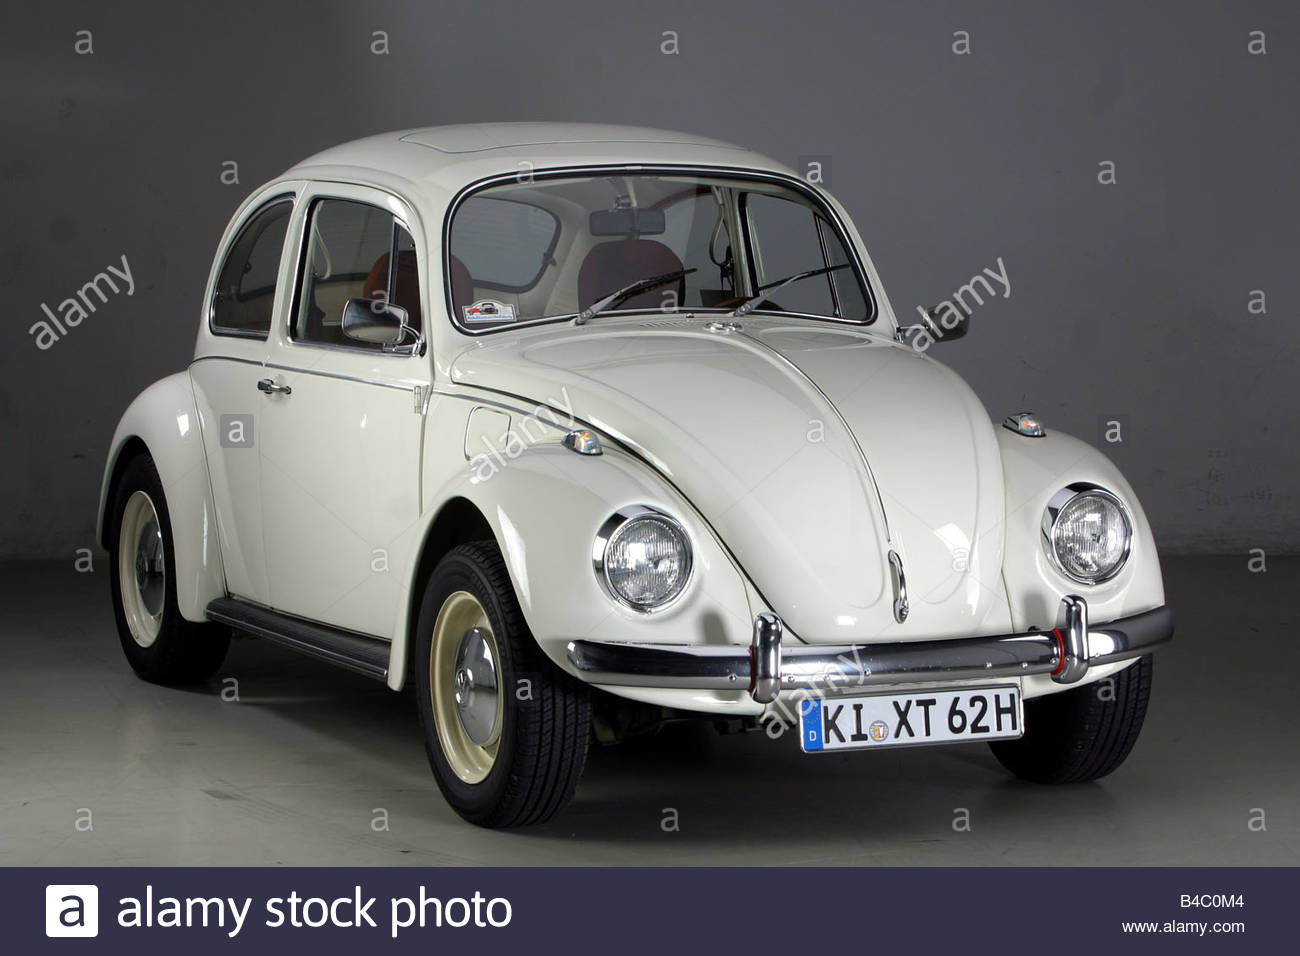 Volkswagen 1300 photo - 4